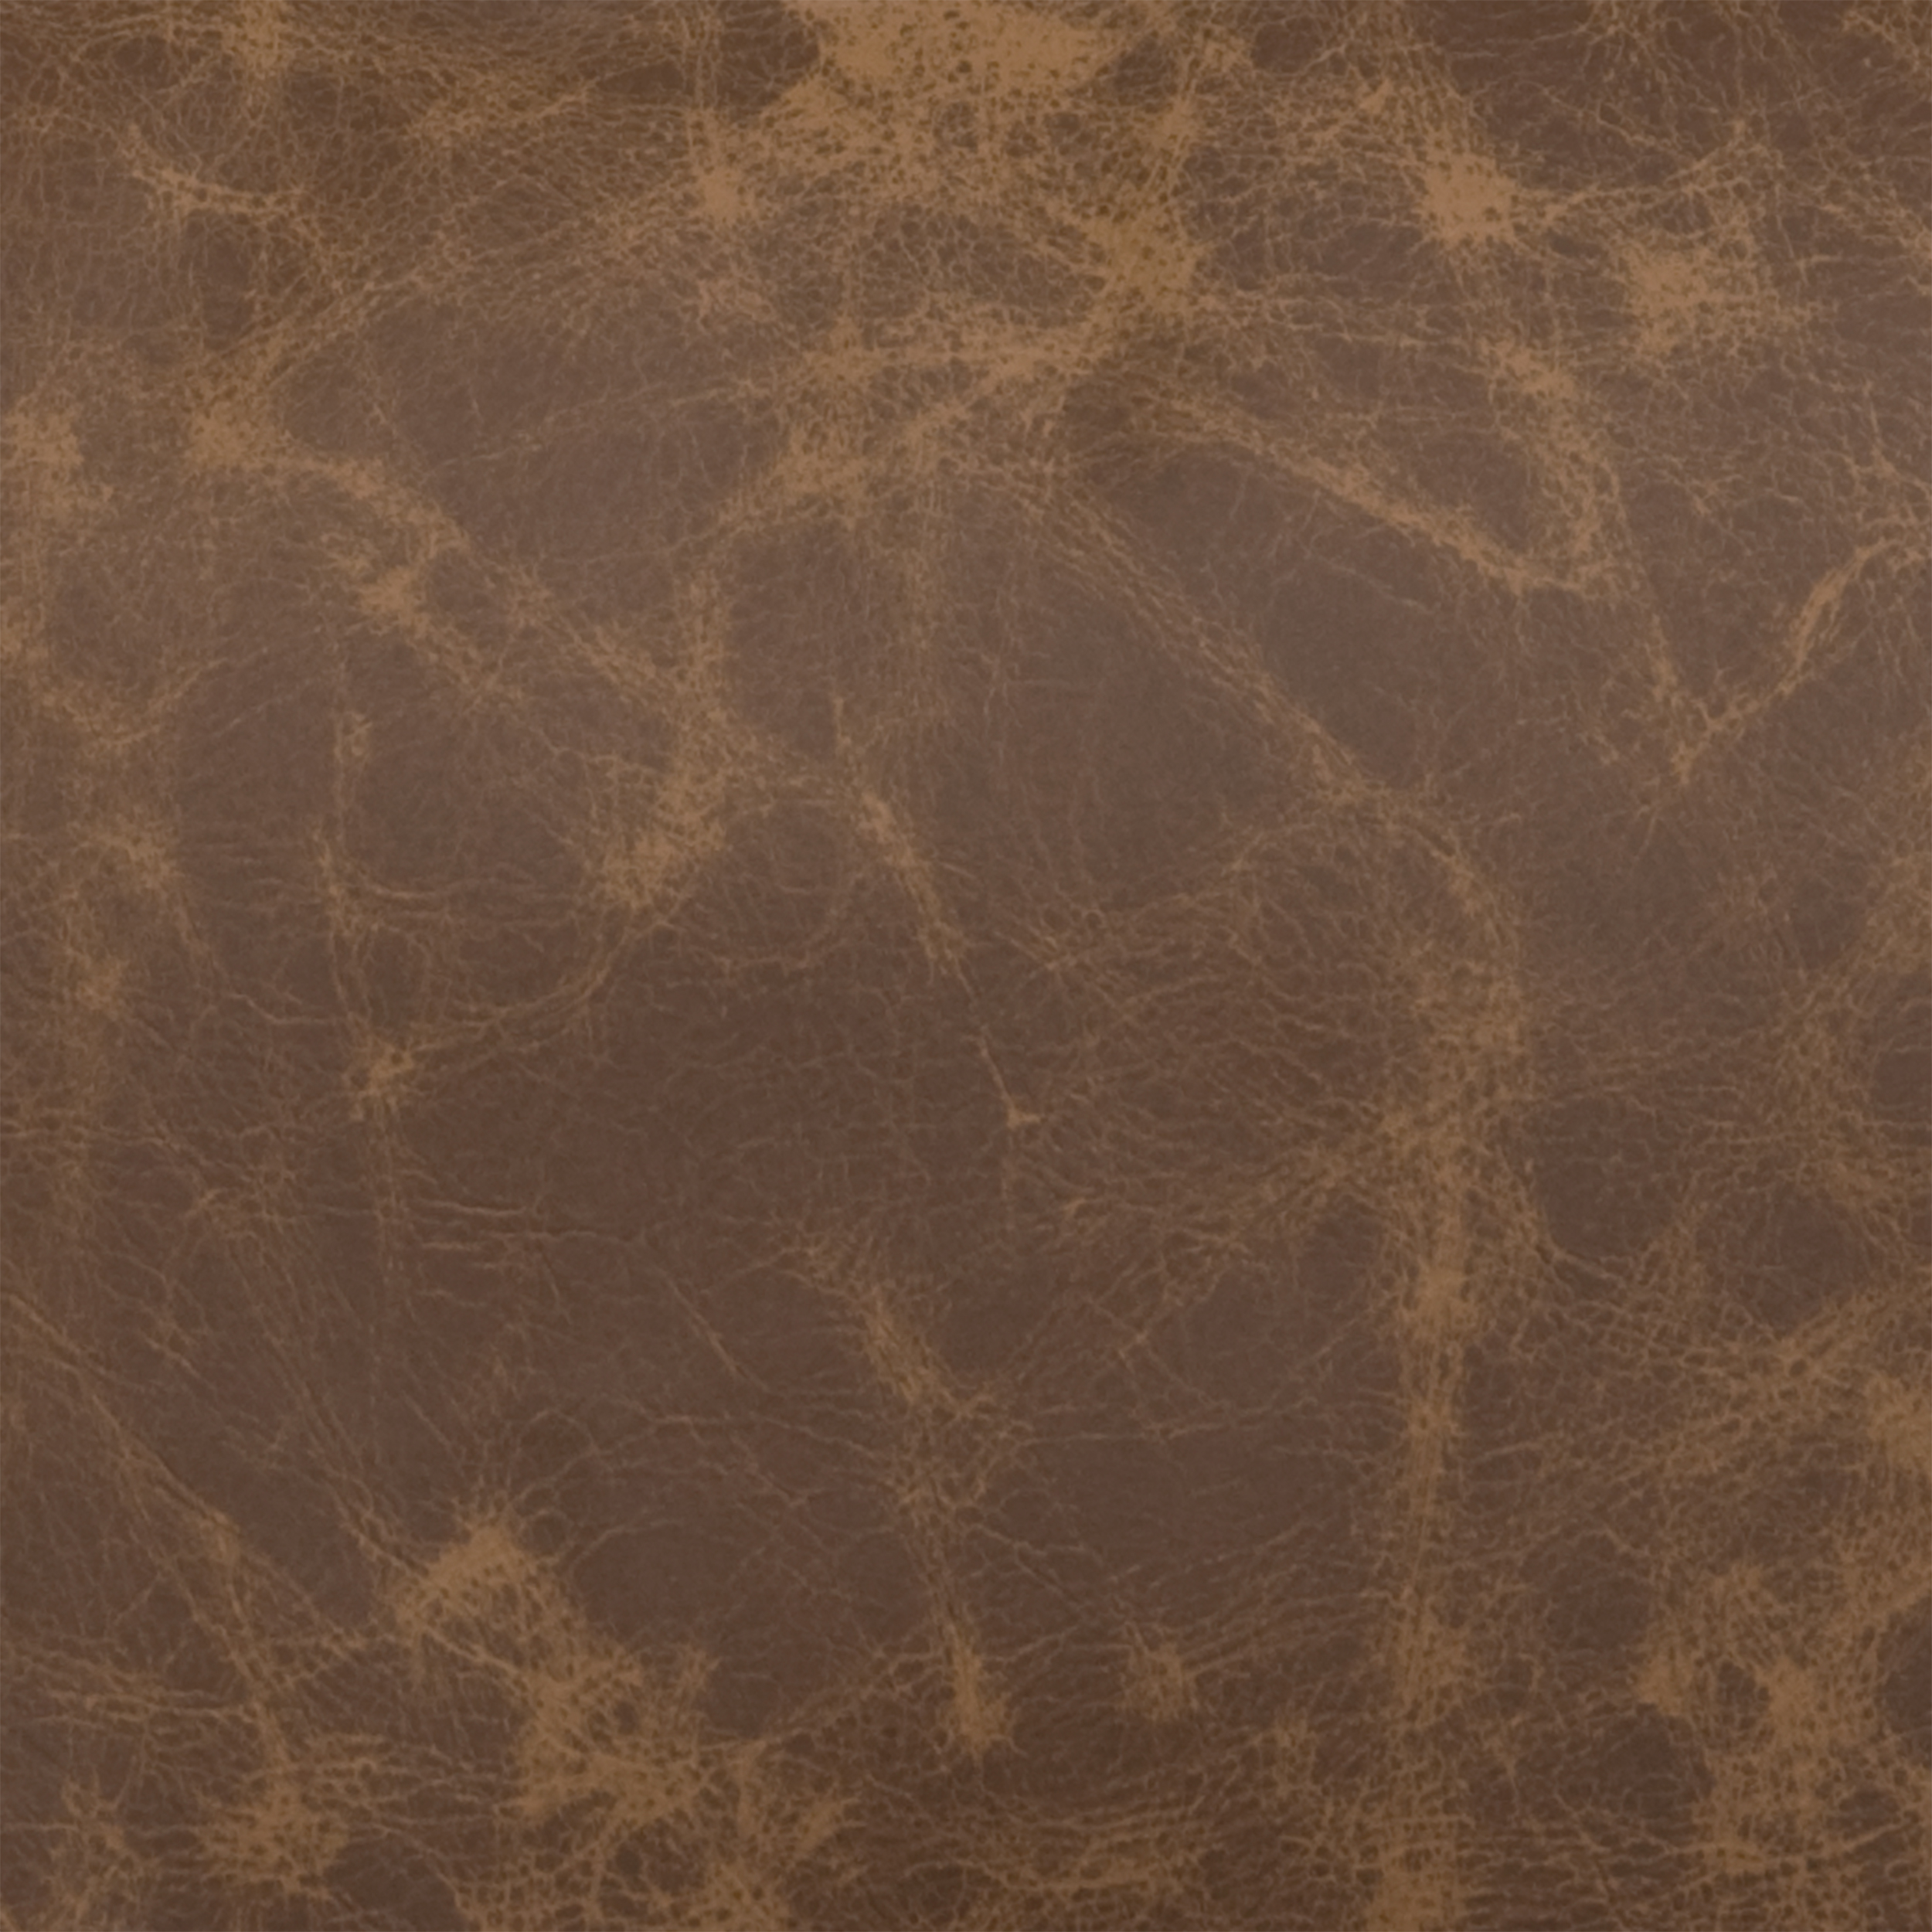 Butte Leather